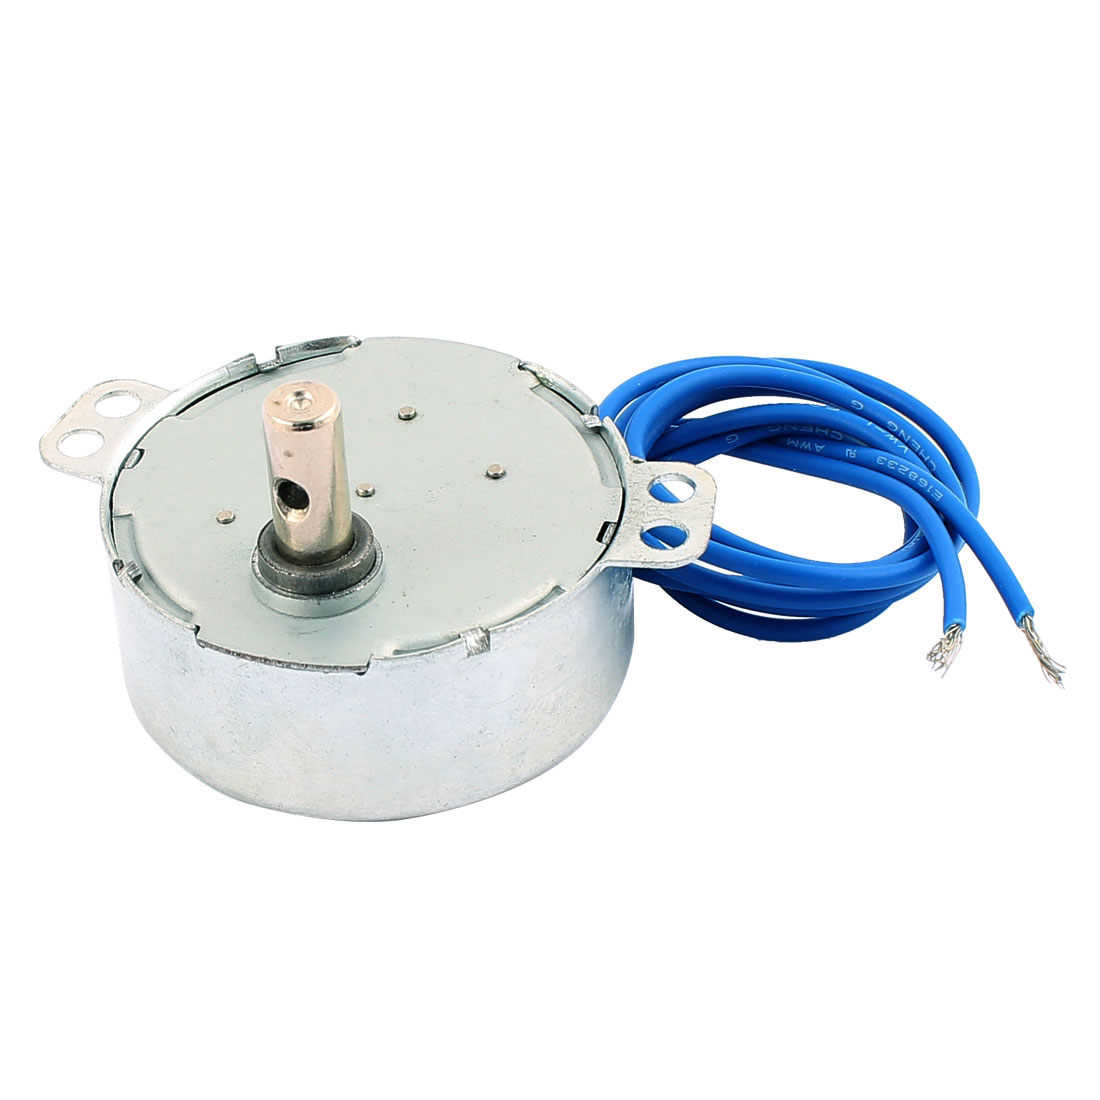 AC 100-127V 10-12R/Min CCW/CW Direction 4W 2 Wires Connecting 50 AC Synchronous Motor